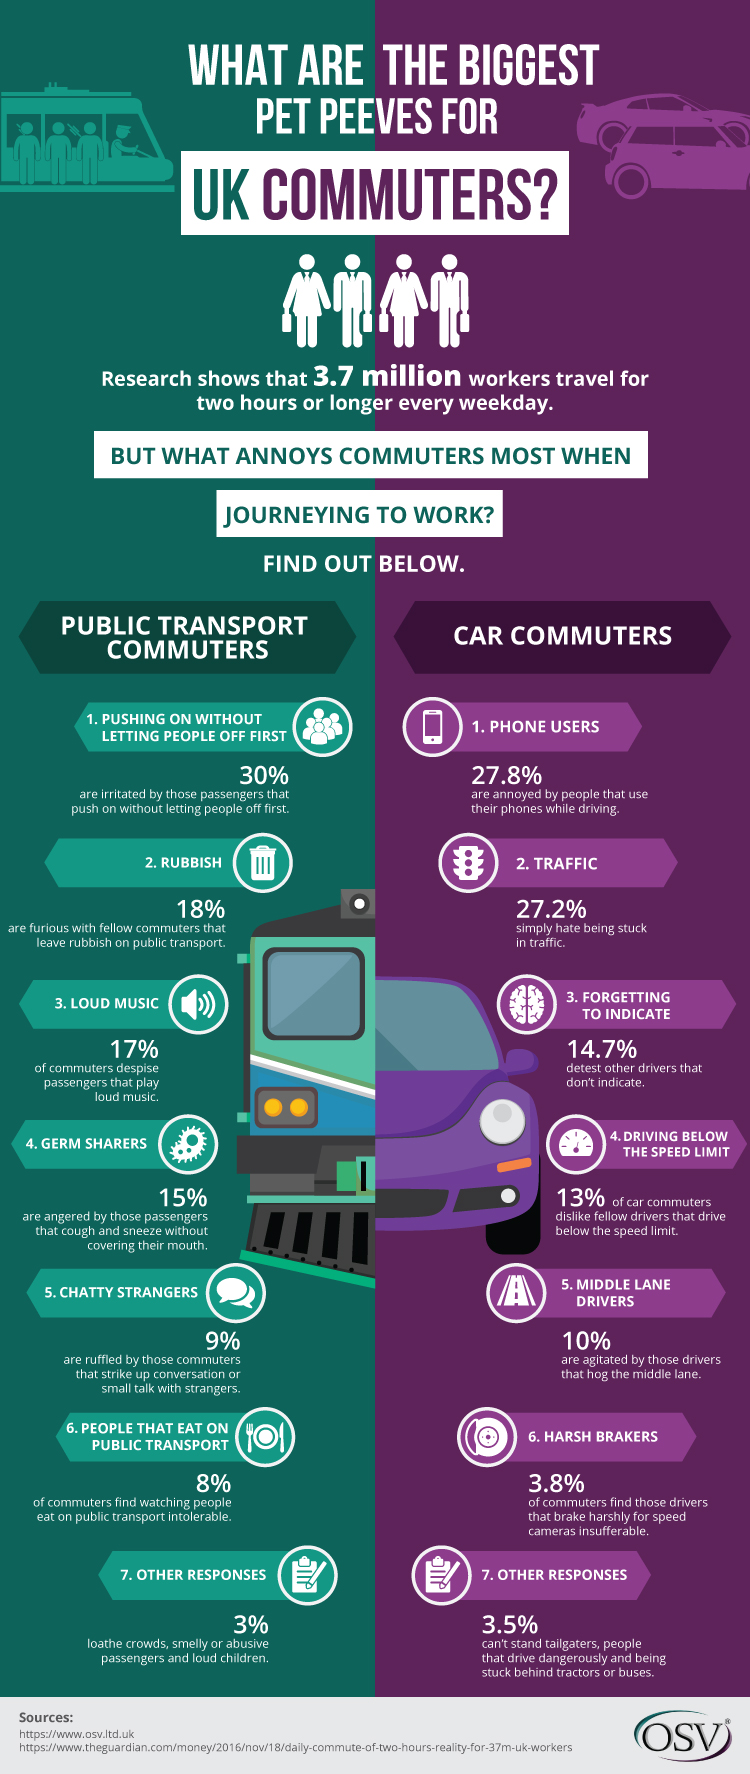 Commuting Habits That Britishers Hate The Most - Infographic